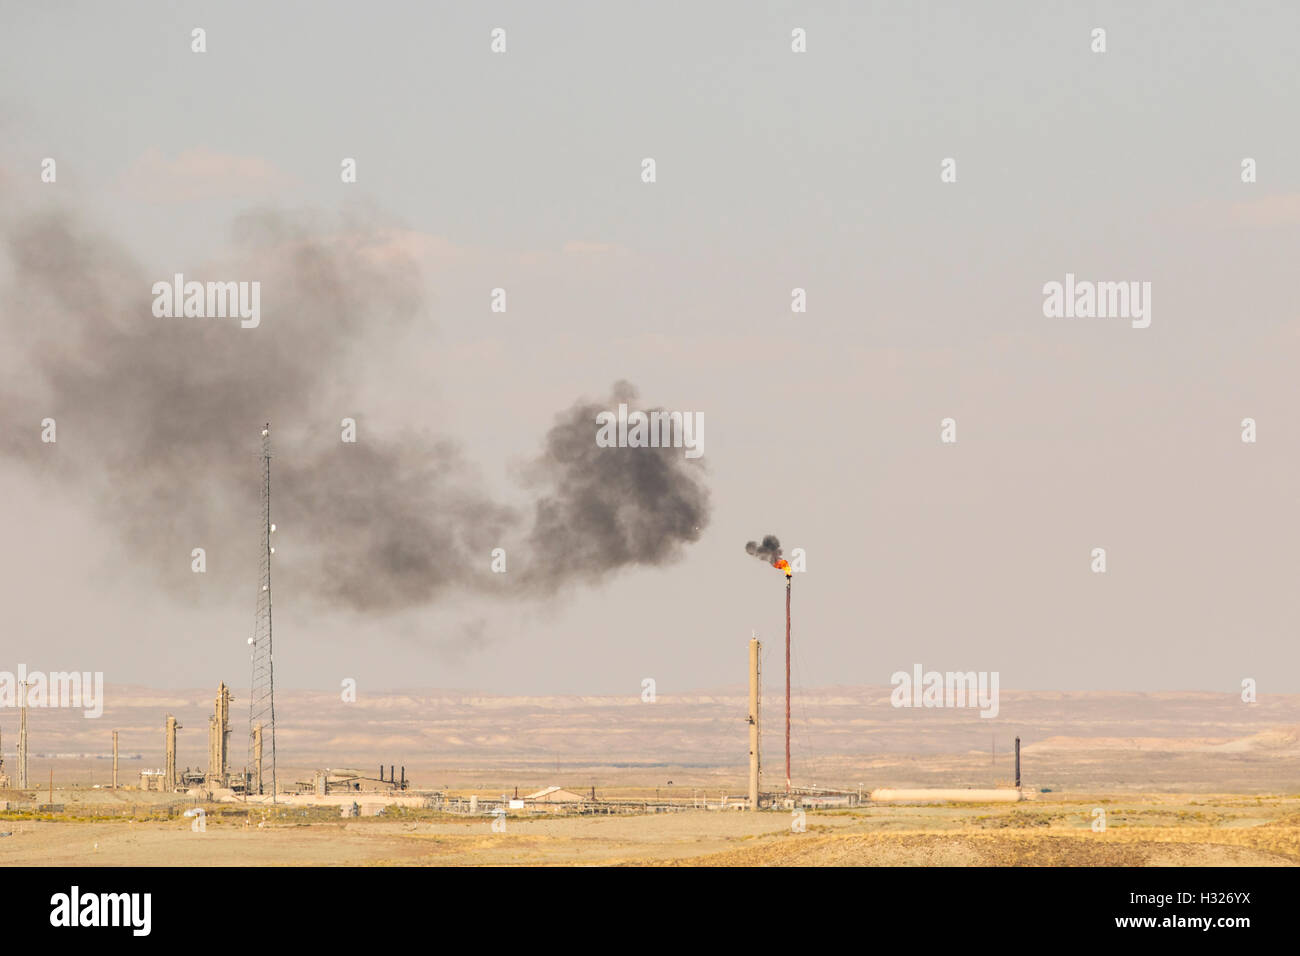 Feu De Chemin Cheminée Pollution De L Air Climate Photos And Climate Images Alamy